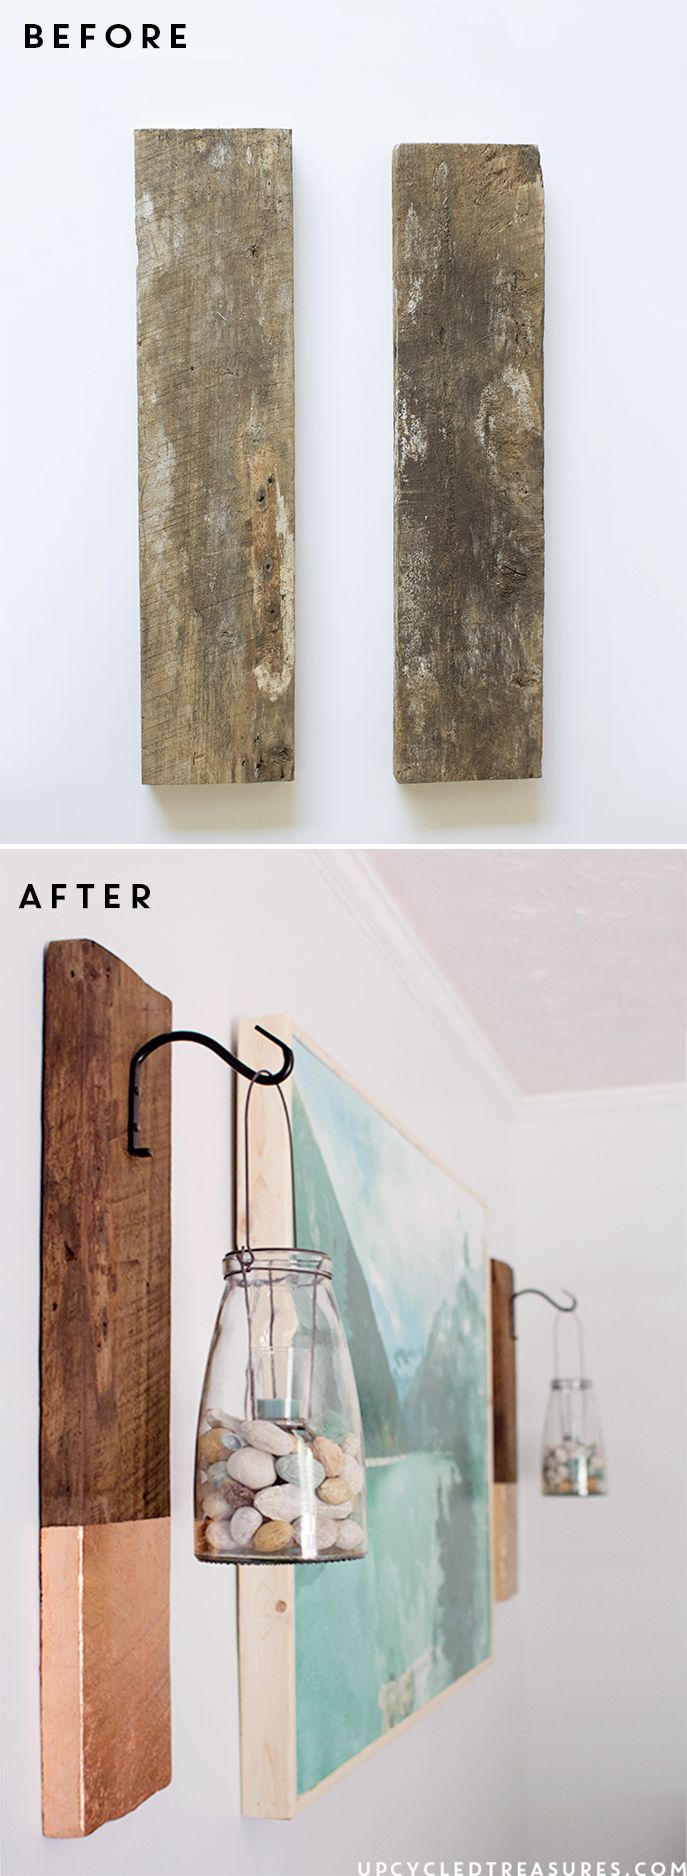 Bedroom wall decor ideas diy - How To Create A Modern Rustic Wall Hanging Rustic Modern Decor Diymodern